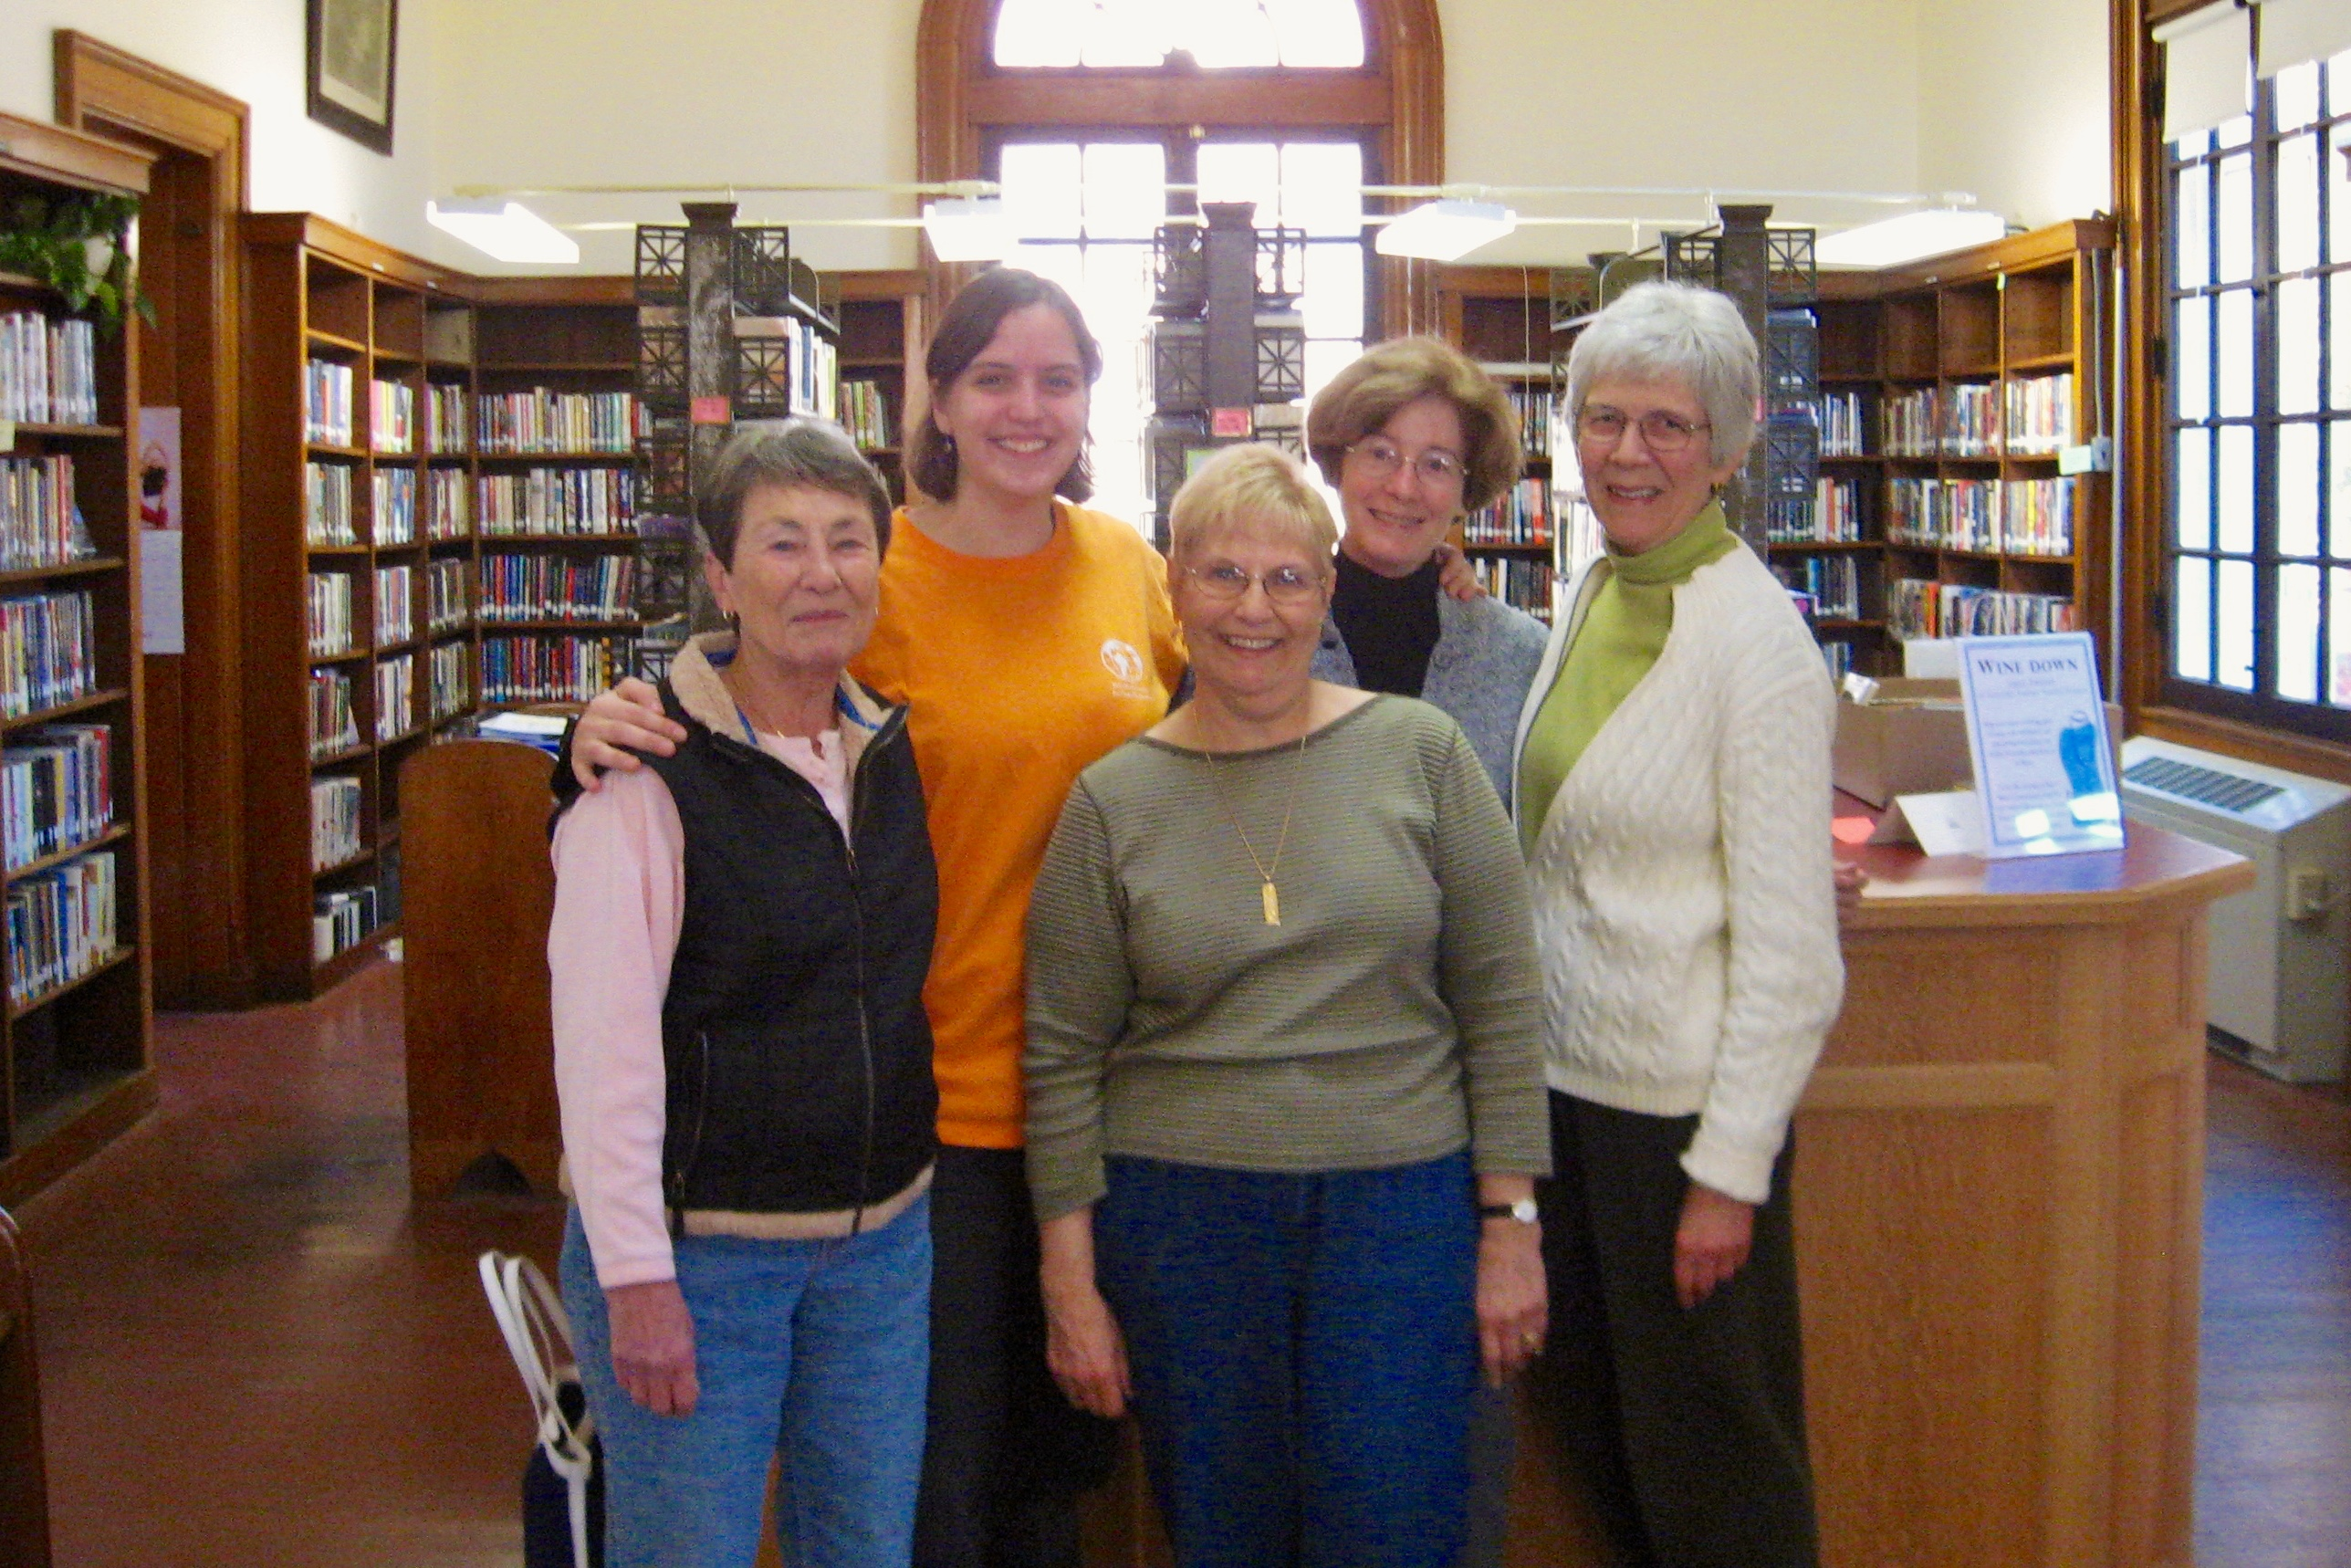 With The Support Of People Like You, Gaylord Library Has Served South Hadley  For 110 Years. Without Your Loyalty And Support, This Free Public Service  ...